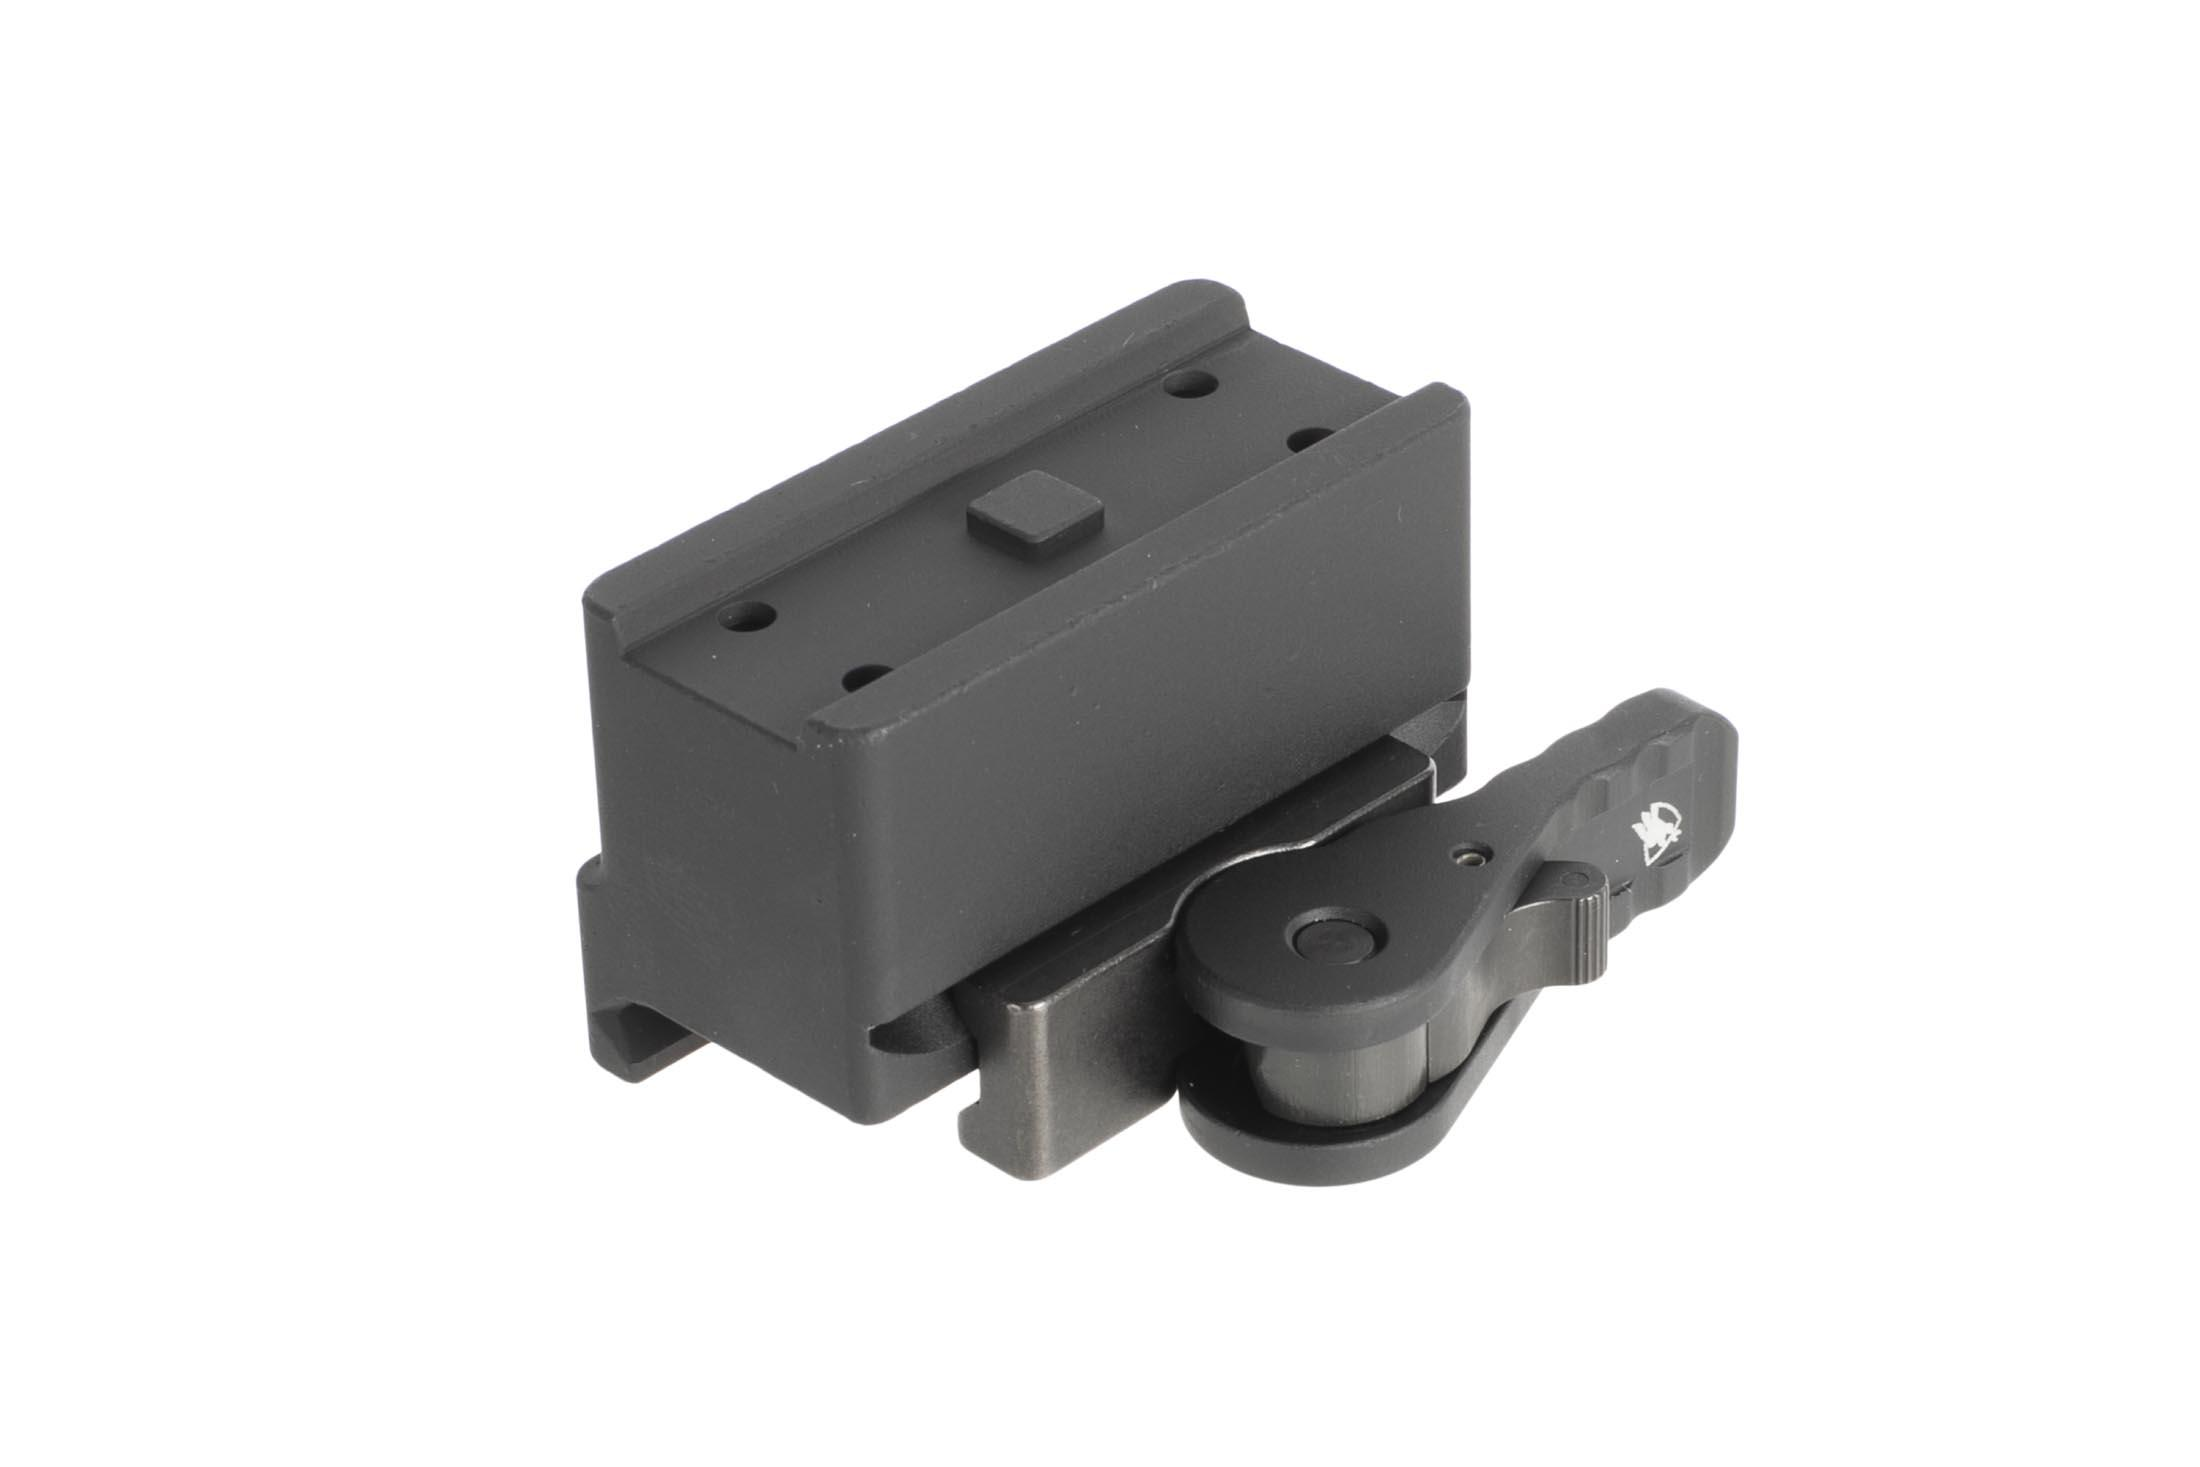 American Defense Quick Detach T1 Micro Mount - Absolute